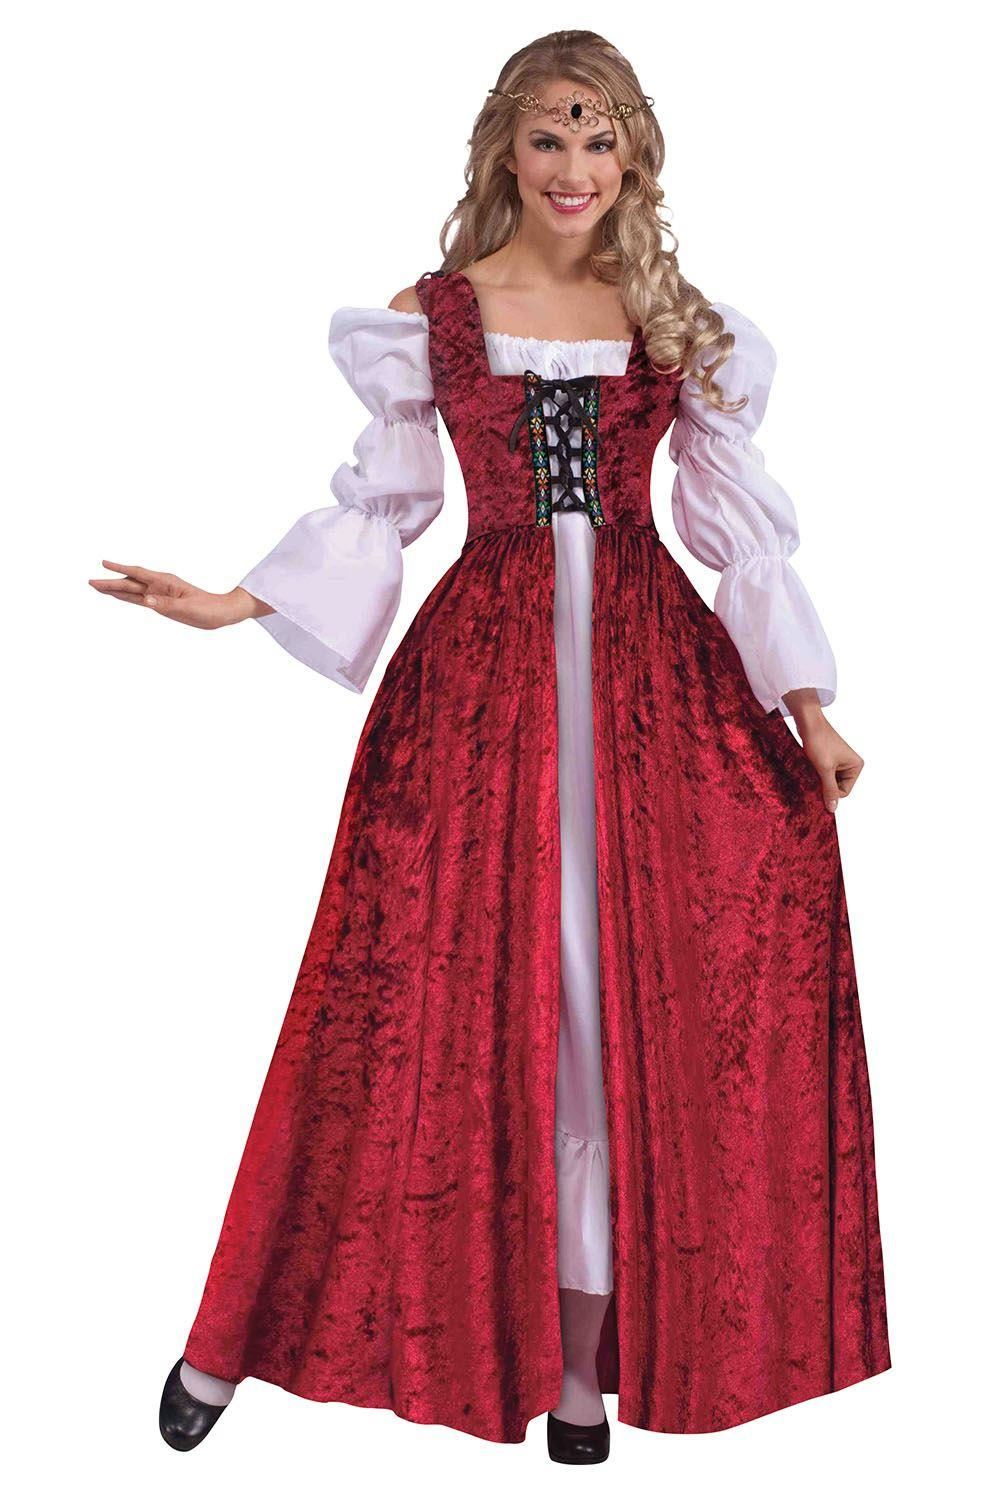 RED-PURPLE-WHITE-MEDIEVAL-RENAISSANCE-GOWN-DRESS-FANCY-DRESS-COSTUME-MAID-MARIAN